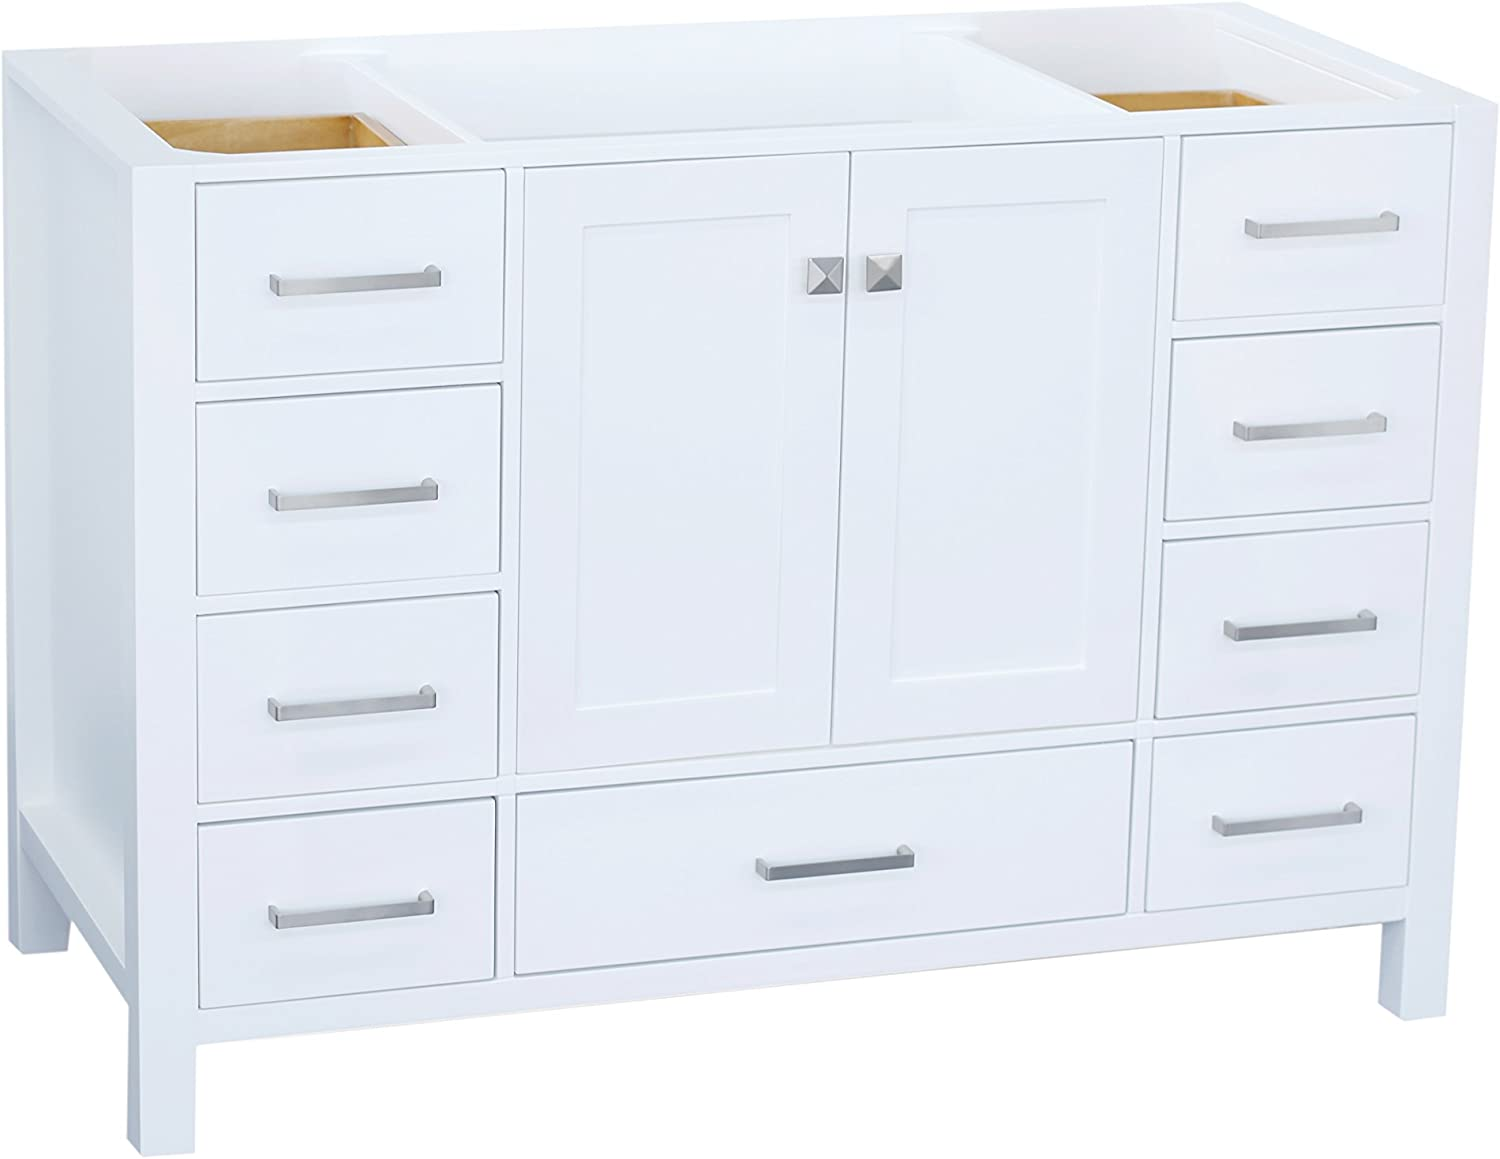 Amazon Com Ariel Cambridge A049s Bc Wht 48 Inch Single Solid Wood White Bathroom Vanity Base Cabinet With 2 Soft Closing Doors And 9 Self Closing Drawers Kitchen Dining